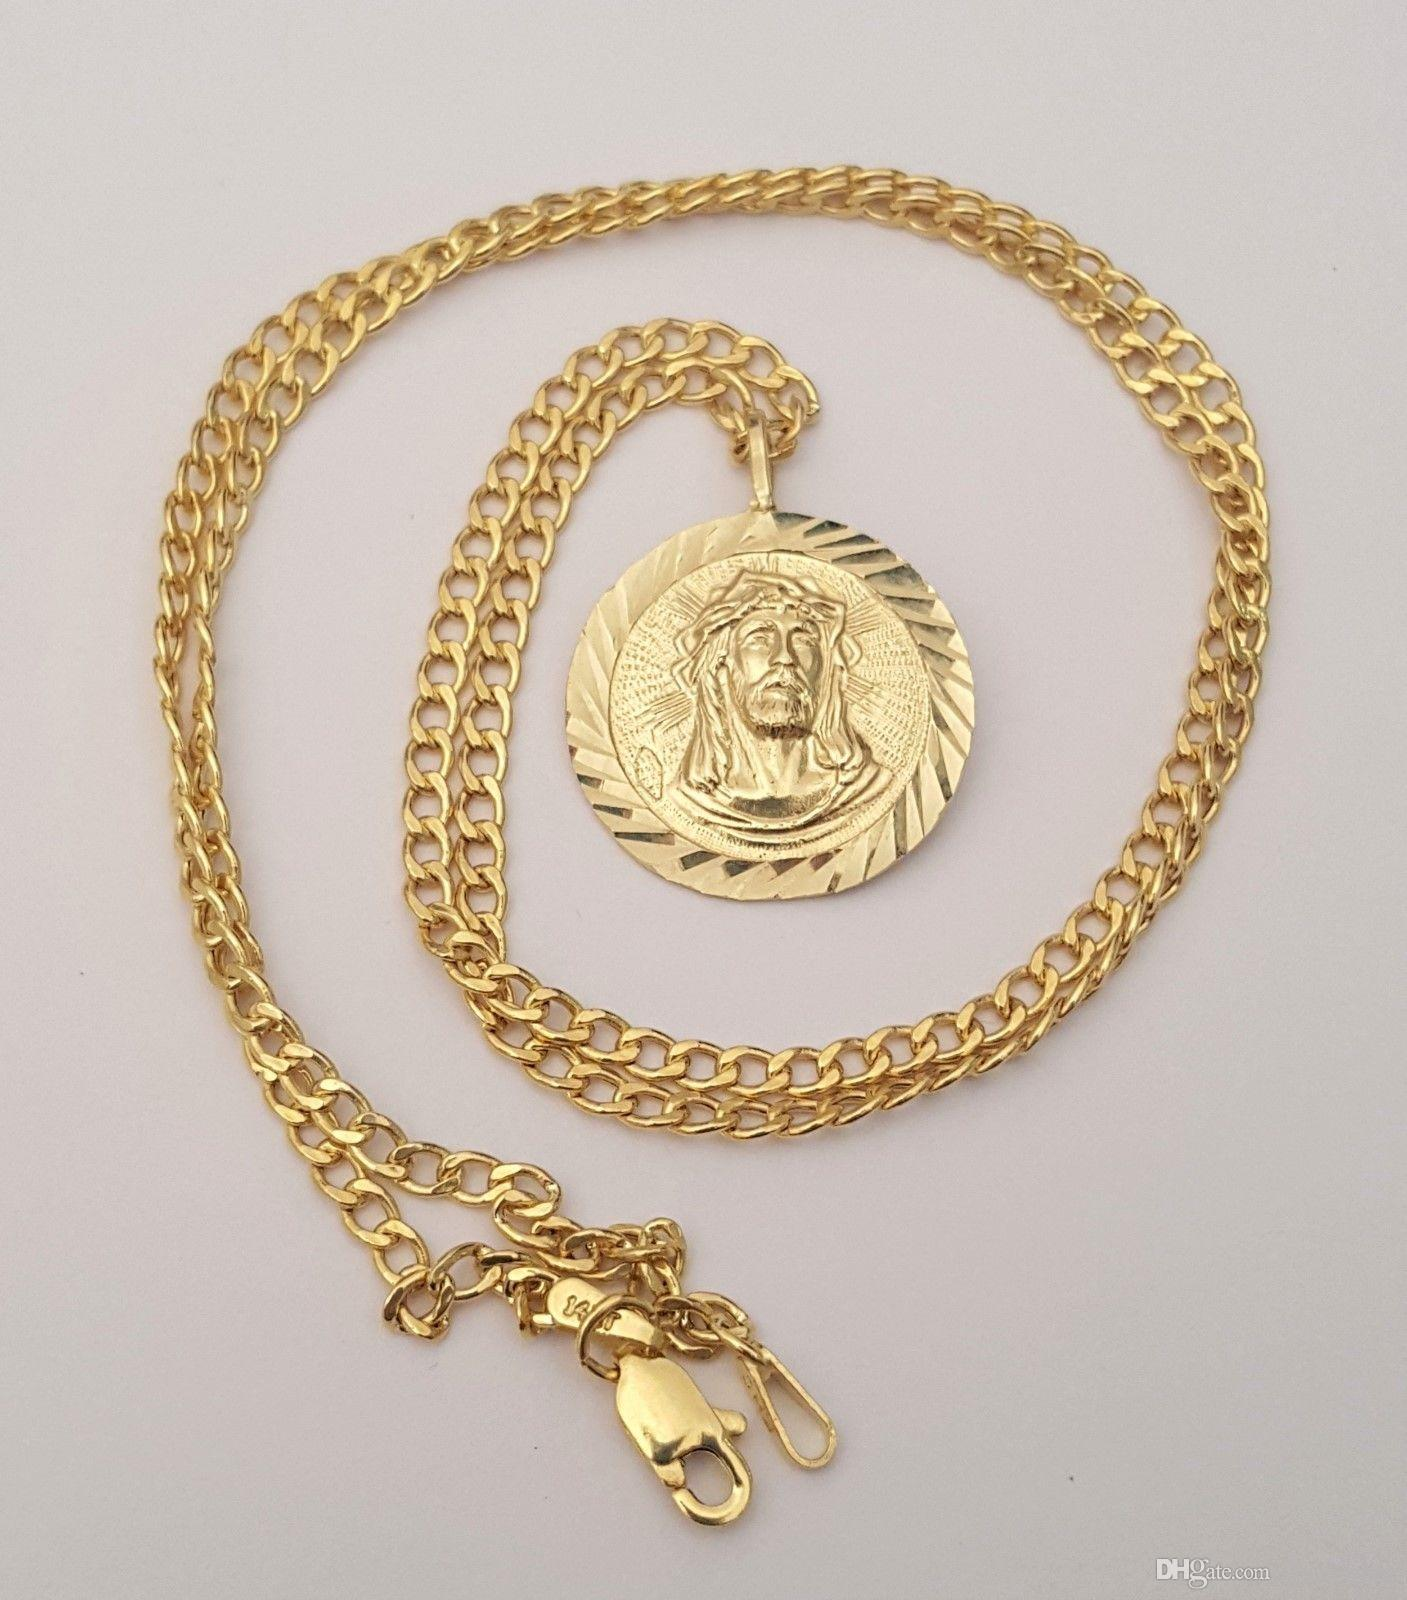 iira the e i chain gold shop h f with s long n ira charm c medallion